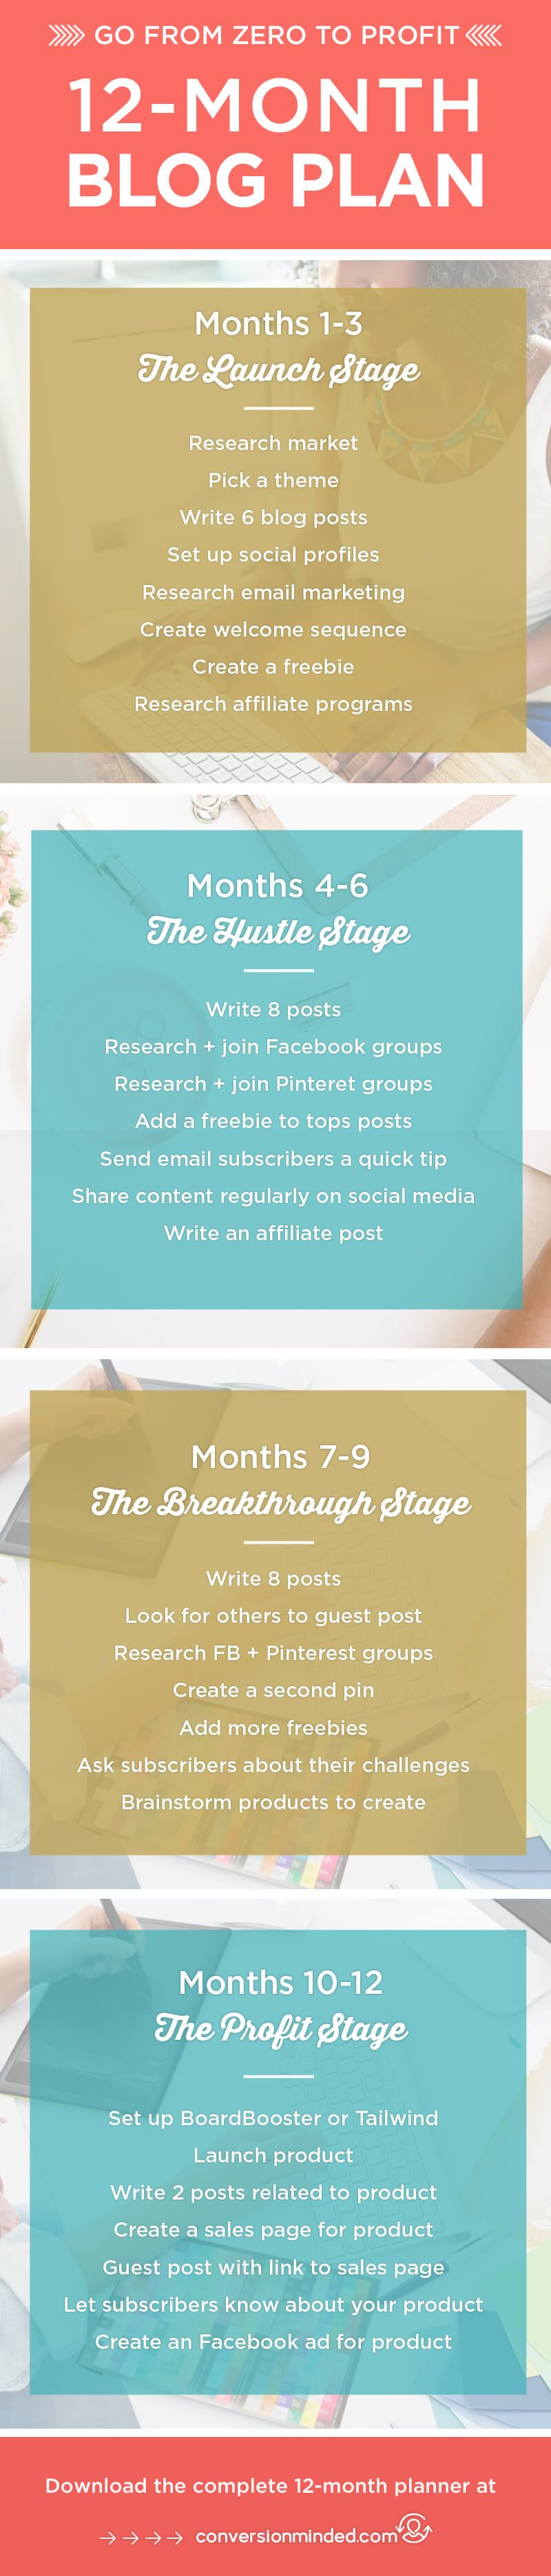 12-Month Blog Plan   Heres my complete monthly blog planner for bloggers and entrepreneurs, with specific goals for each stage of your blog/business: Launch, Hustle, Breakthrough and Scale. Free printable blog planner included. Click through to see the planner!